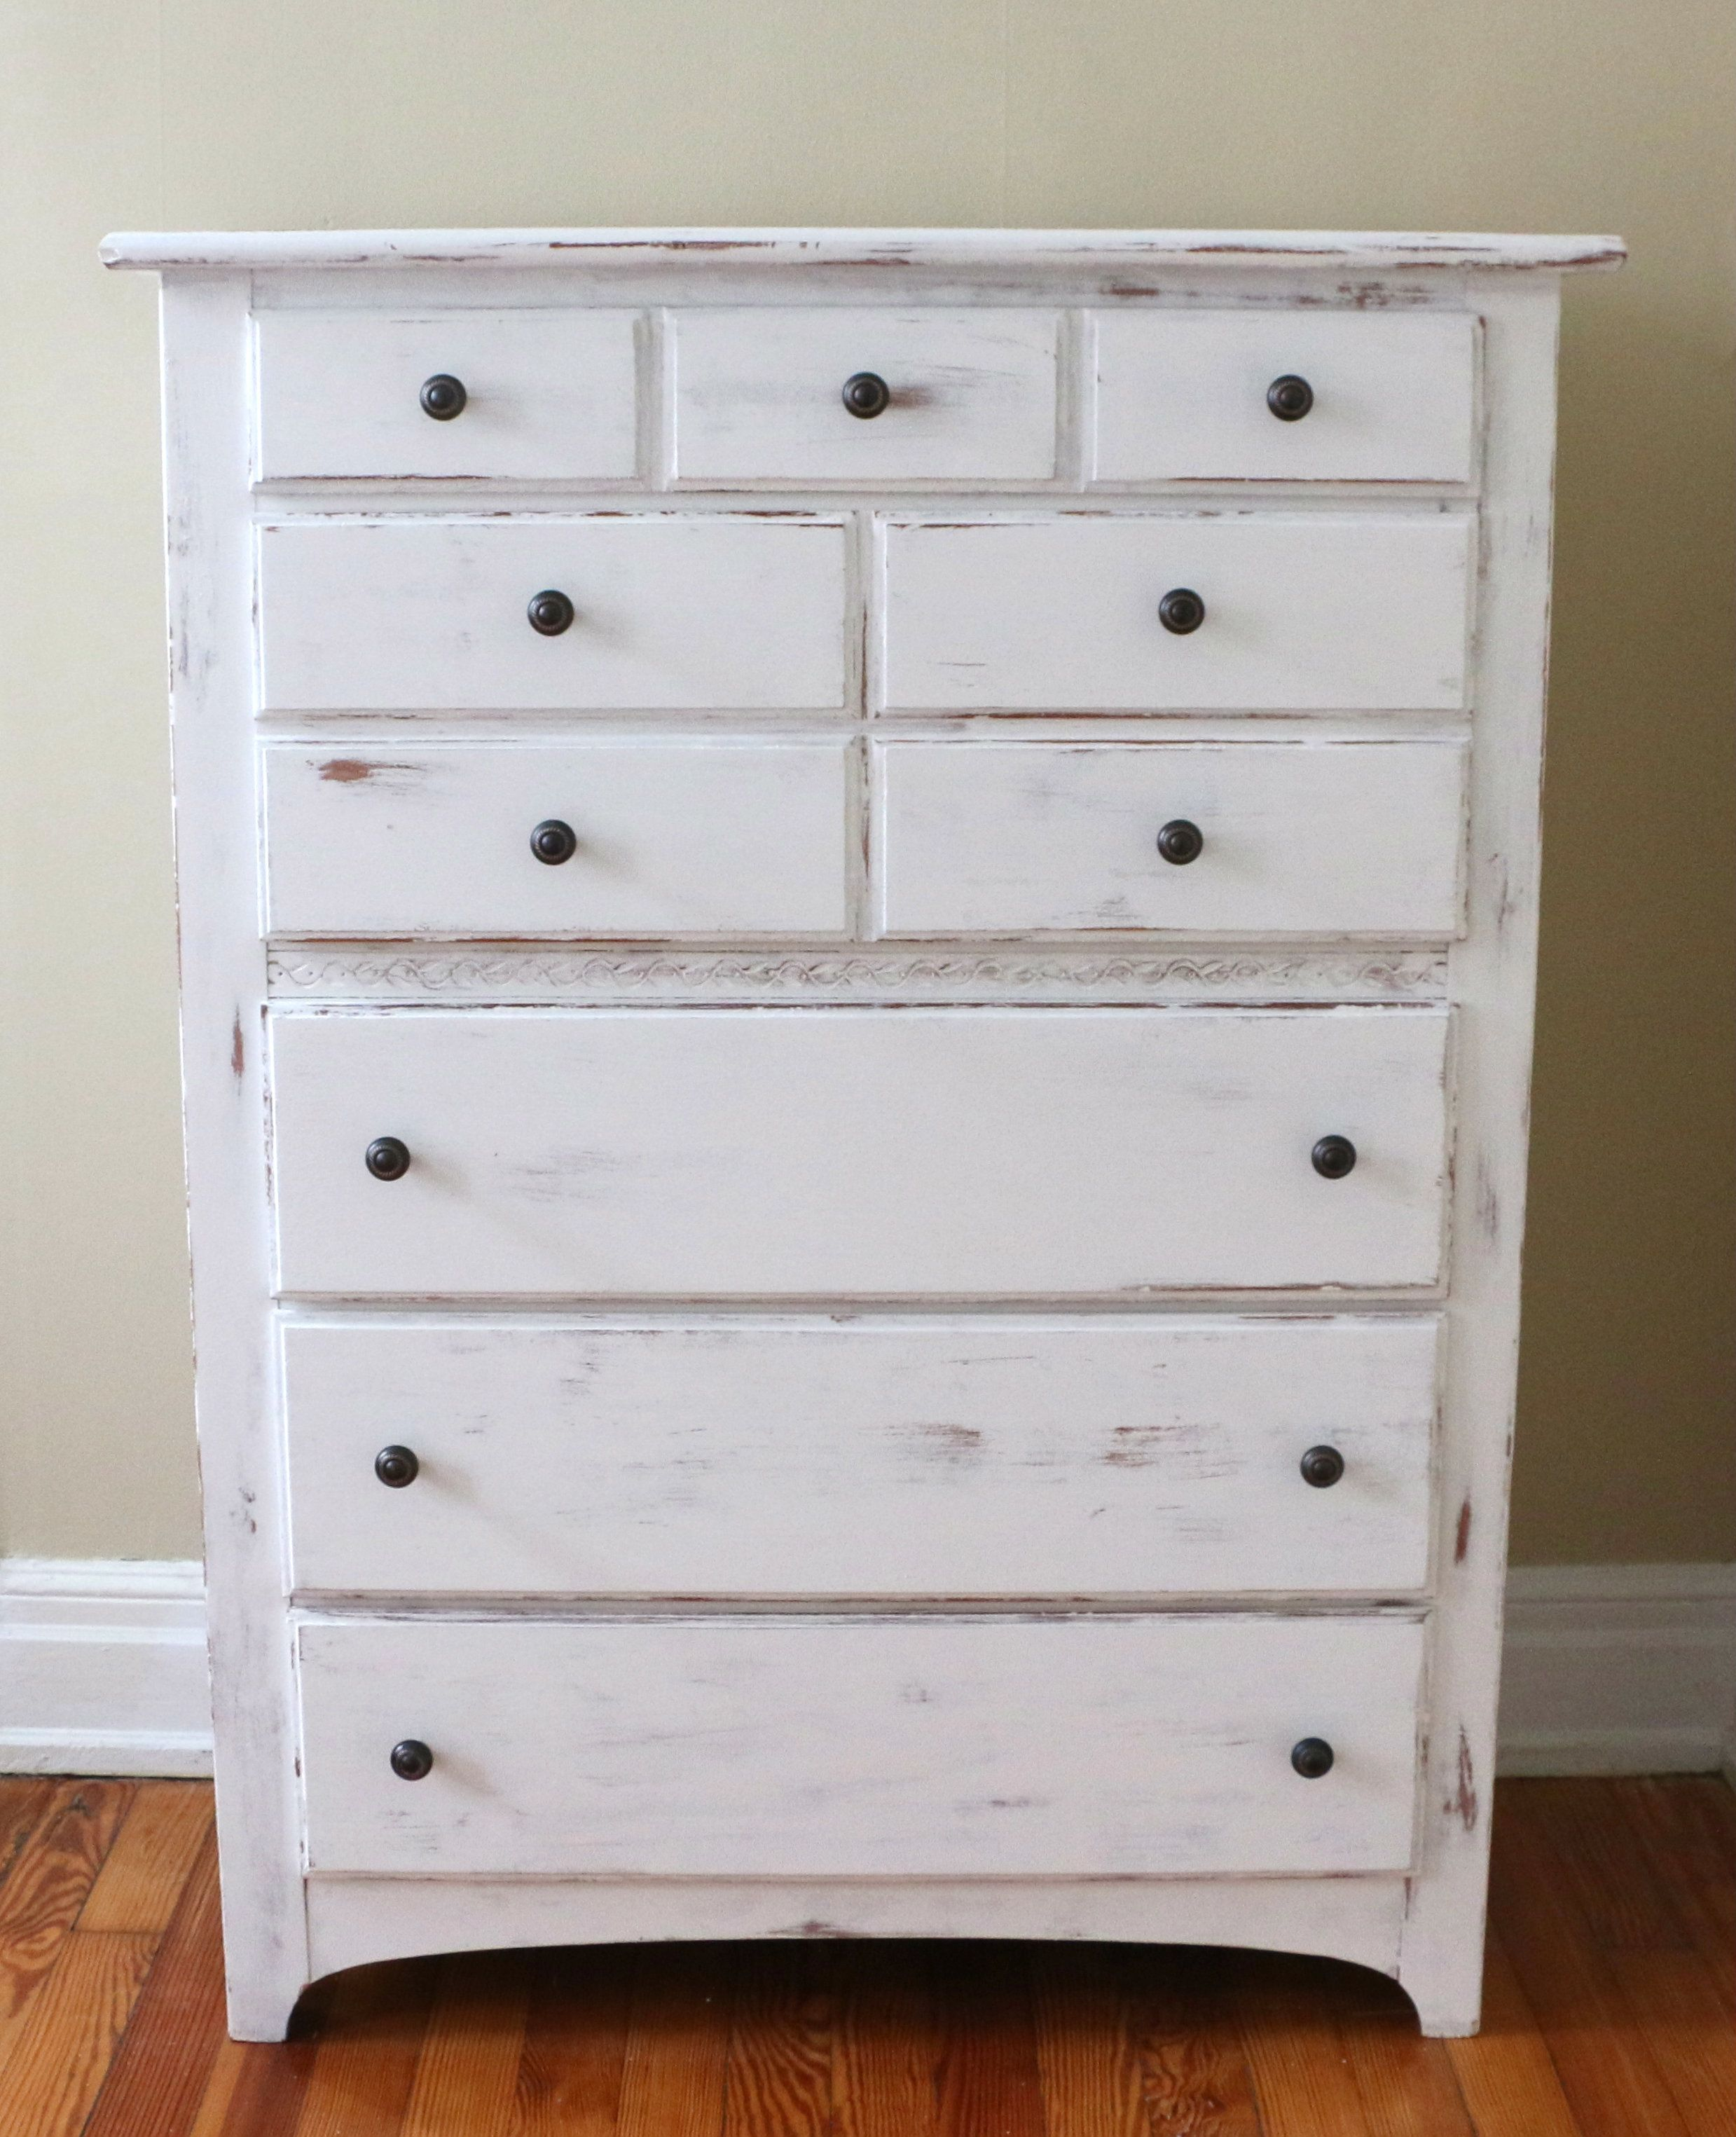 Before & After: An Outdated Garage Sale Dresser Gets a Shabby Chic ...